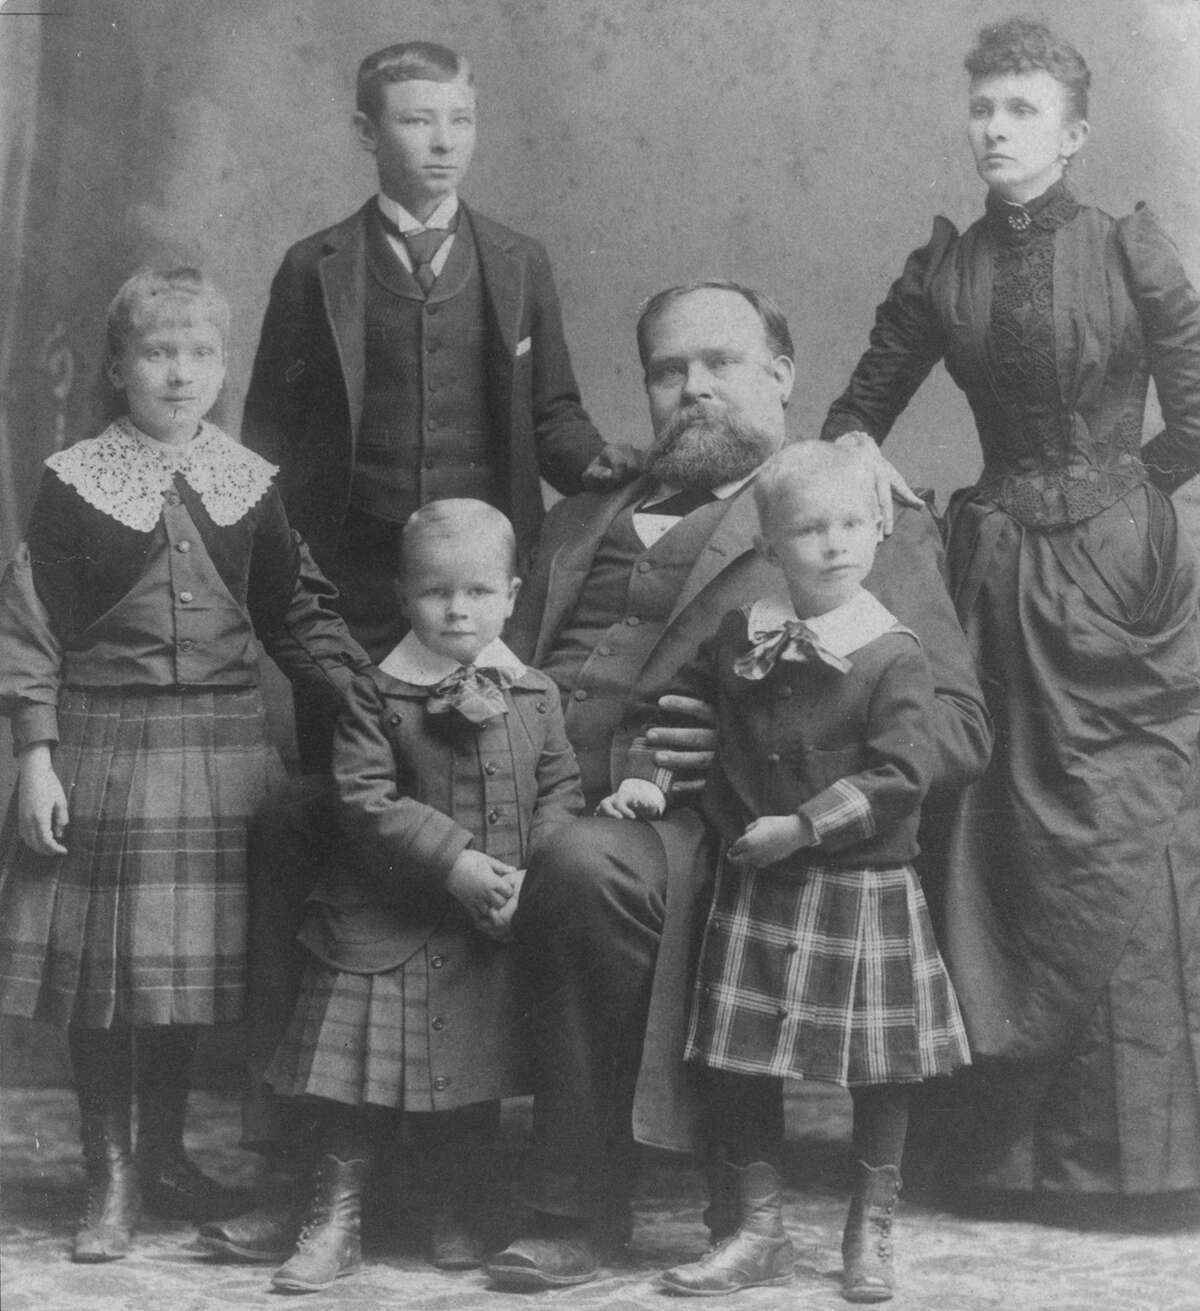 James Stephen Hogg, Texas governor from 1891-95, is shown with his family. At left is Ima, with Will Hogg and Sarah Ann